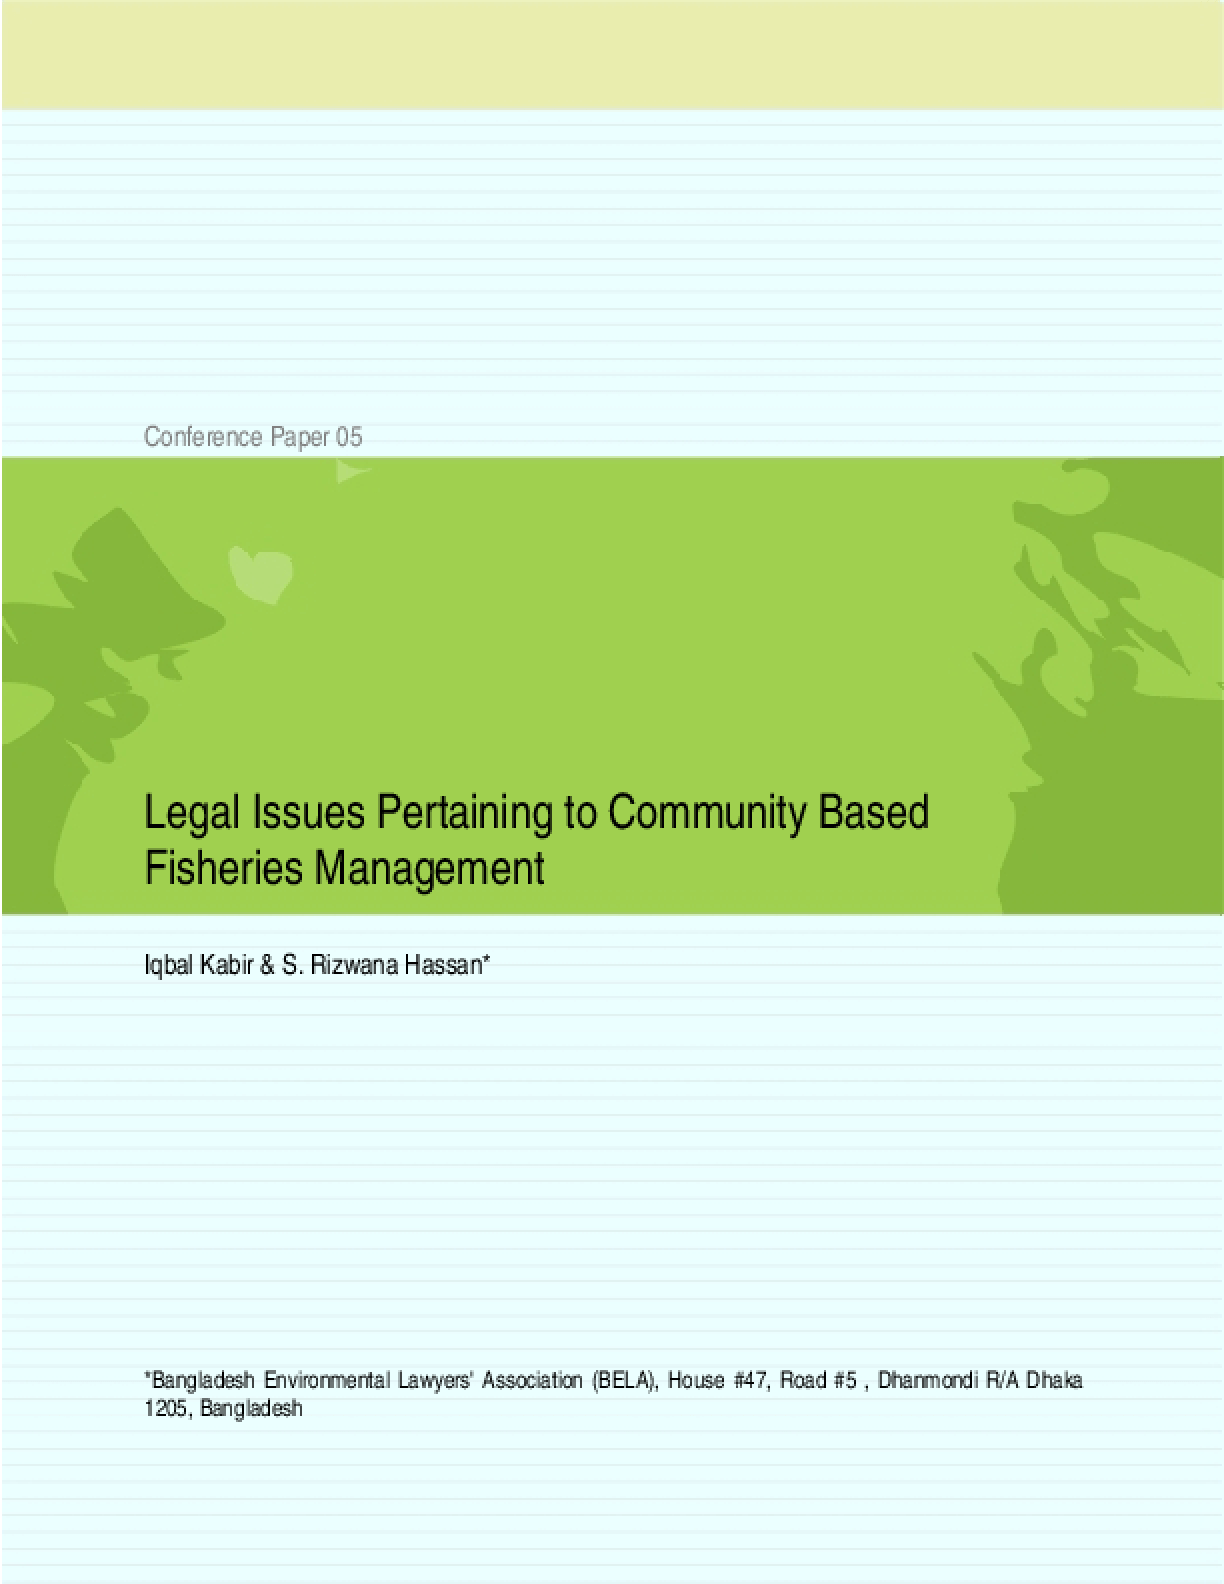 Legal Issues Pertaining to Community Based Fisheries Management